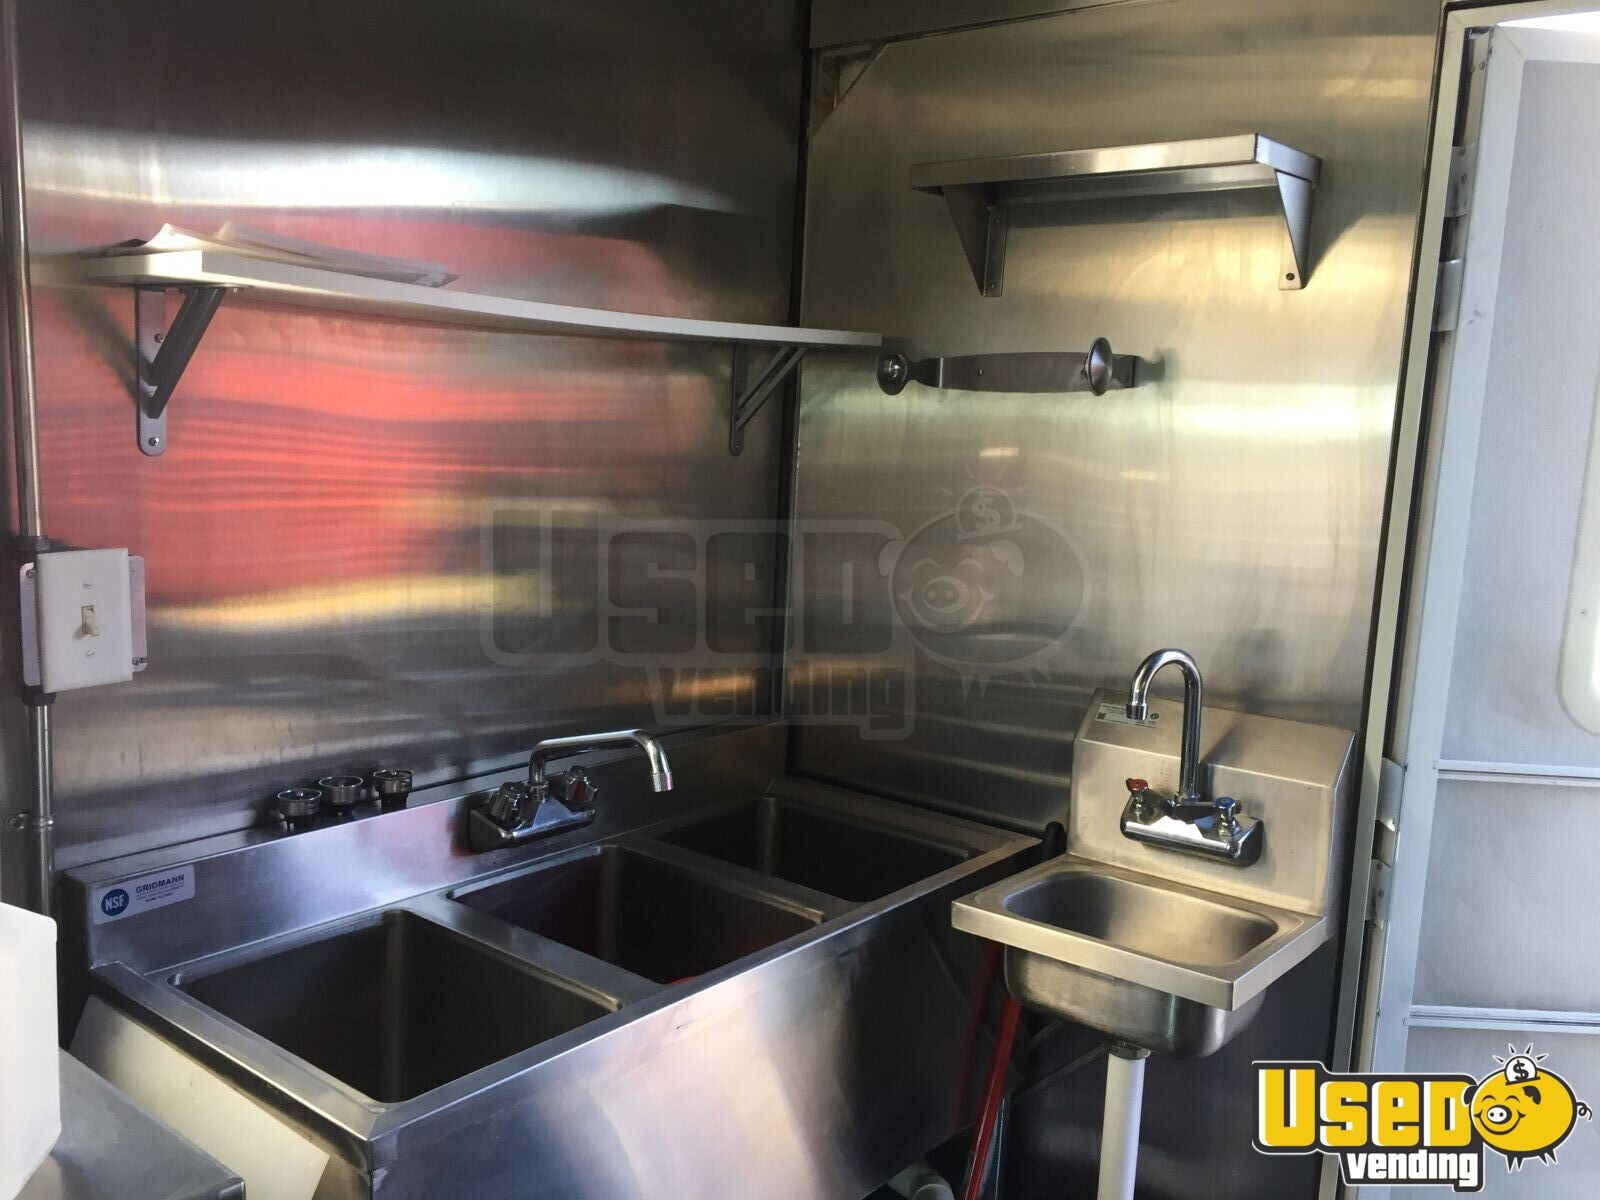 1991 Step Van Kitchen Food Truck All-purpose Food Truck Stainless Steel Wall Covers Missouri Diesel Engine for Sale - 5